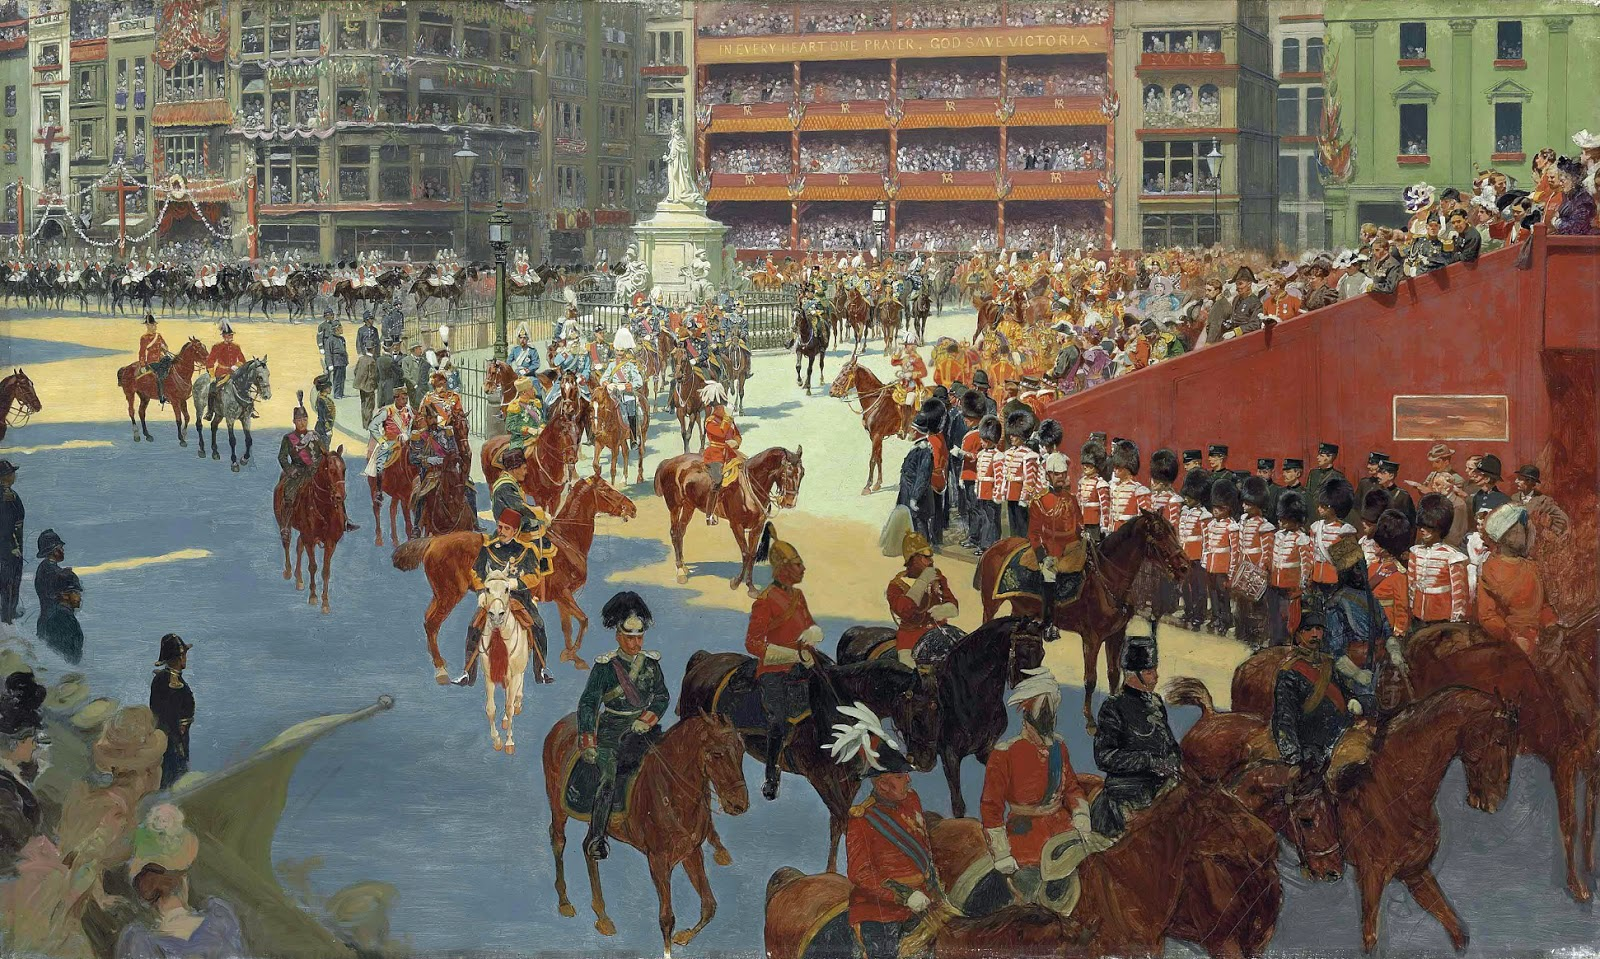 John Charlton - 'God save the Queen' - Queen Victoria arriving at St Paul's Cathedral on the Occasion of the Diamond Jubilee Thanksgiving Service, 22 June 1897